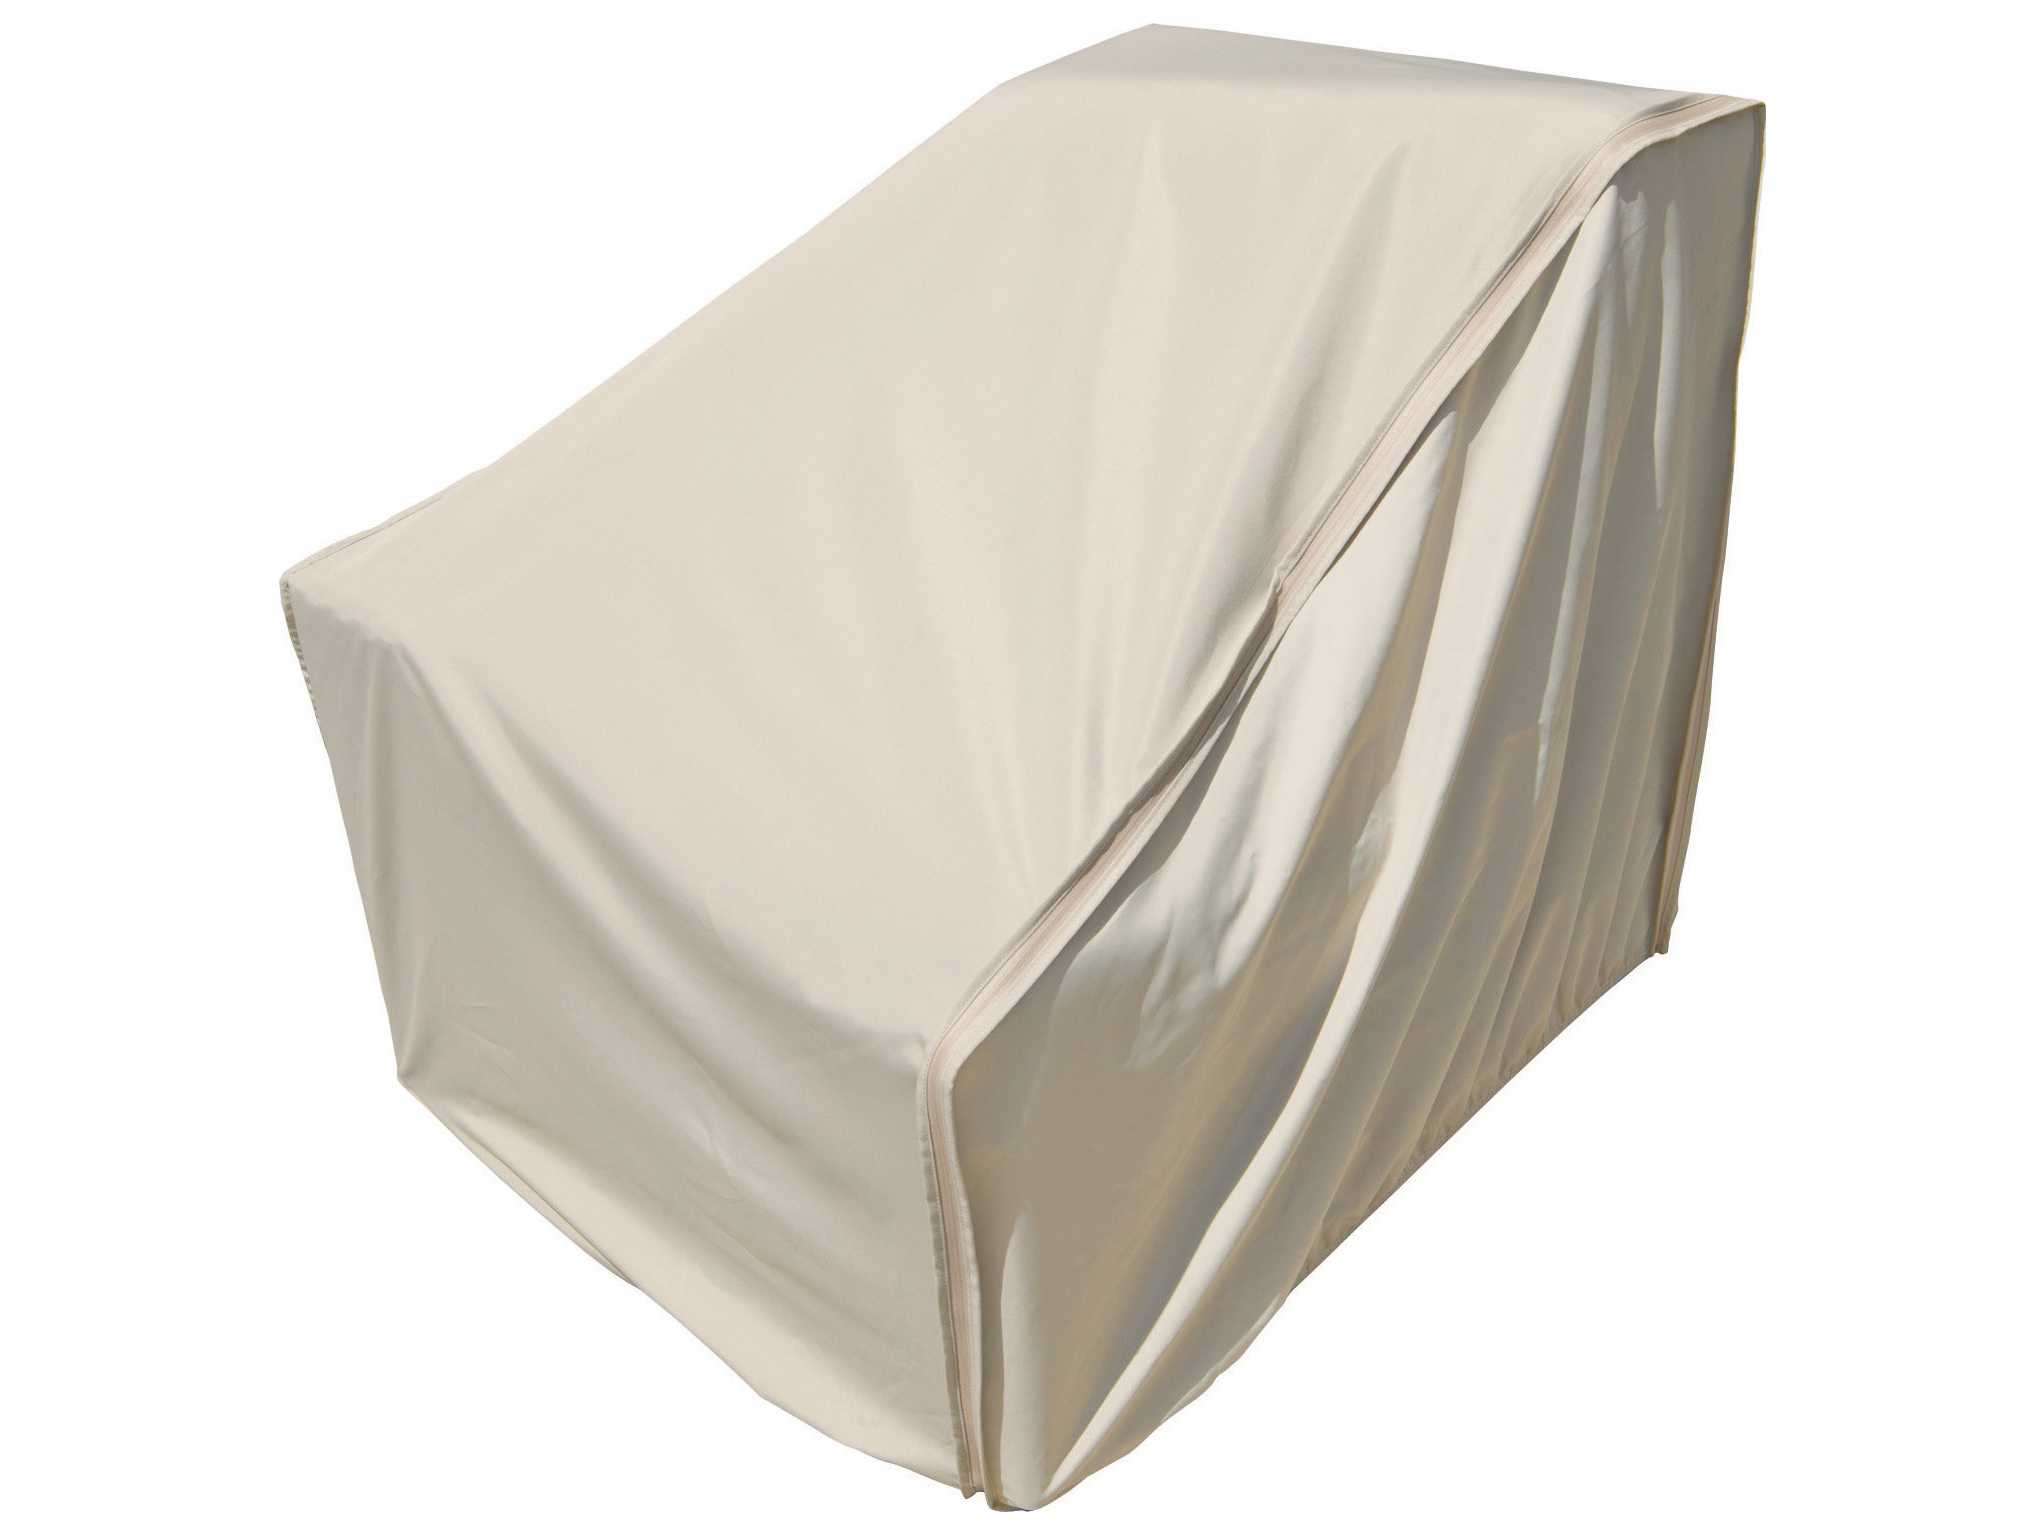 Treasure garden modular right end sectional cover cp301 for Treasure garden patio furniture covers